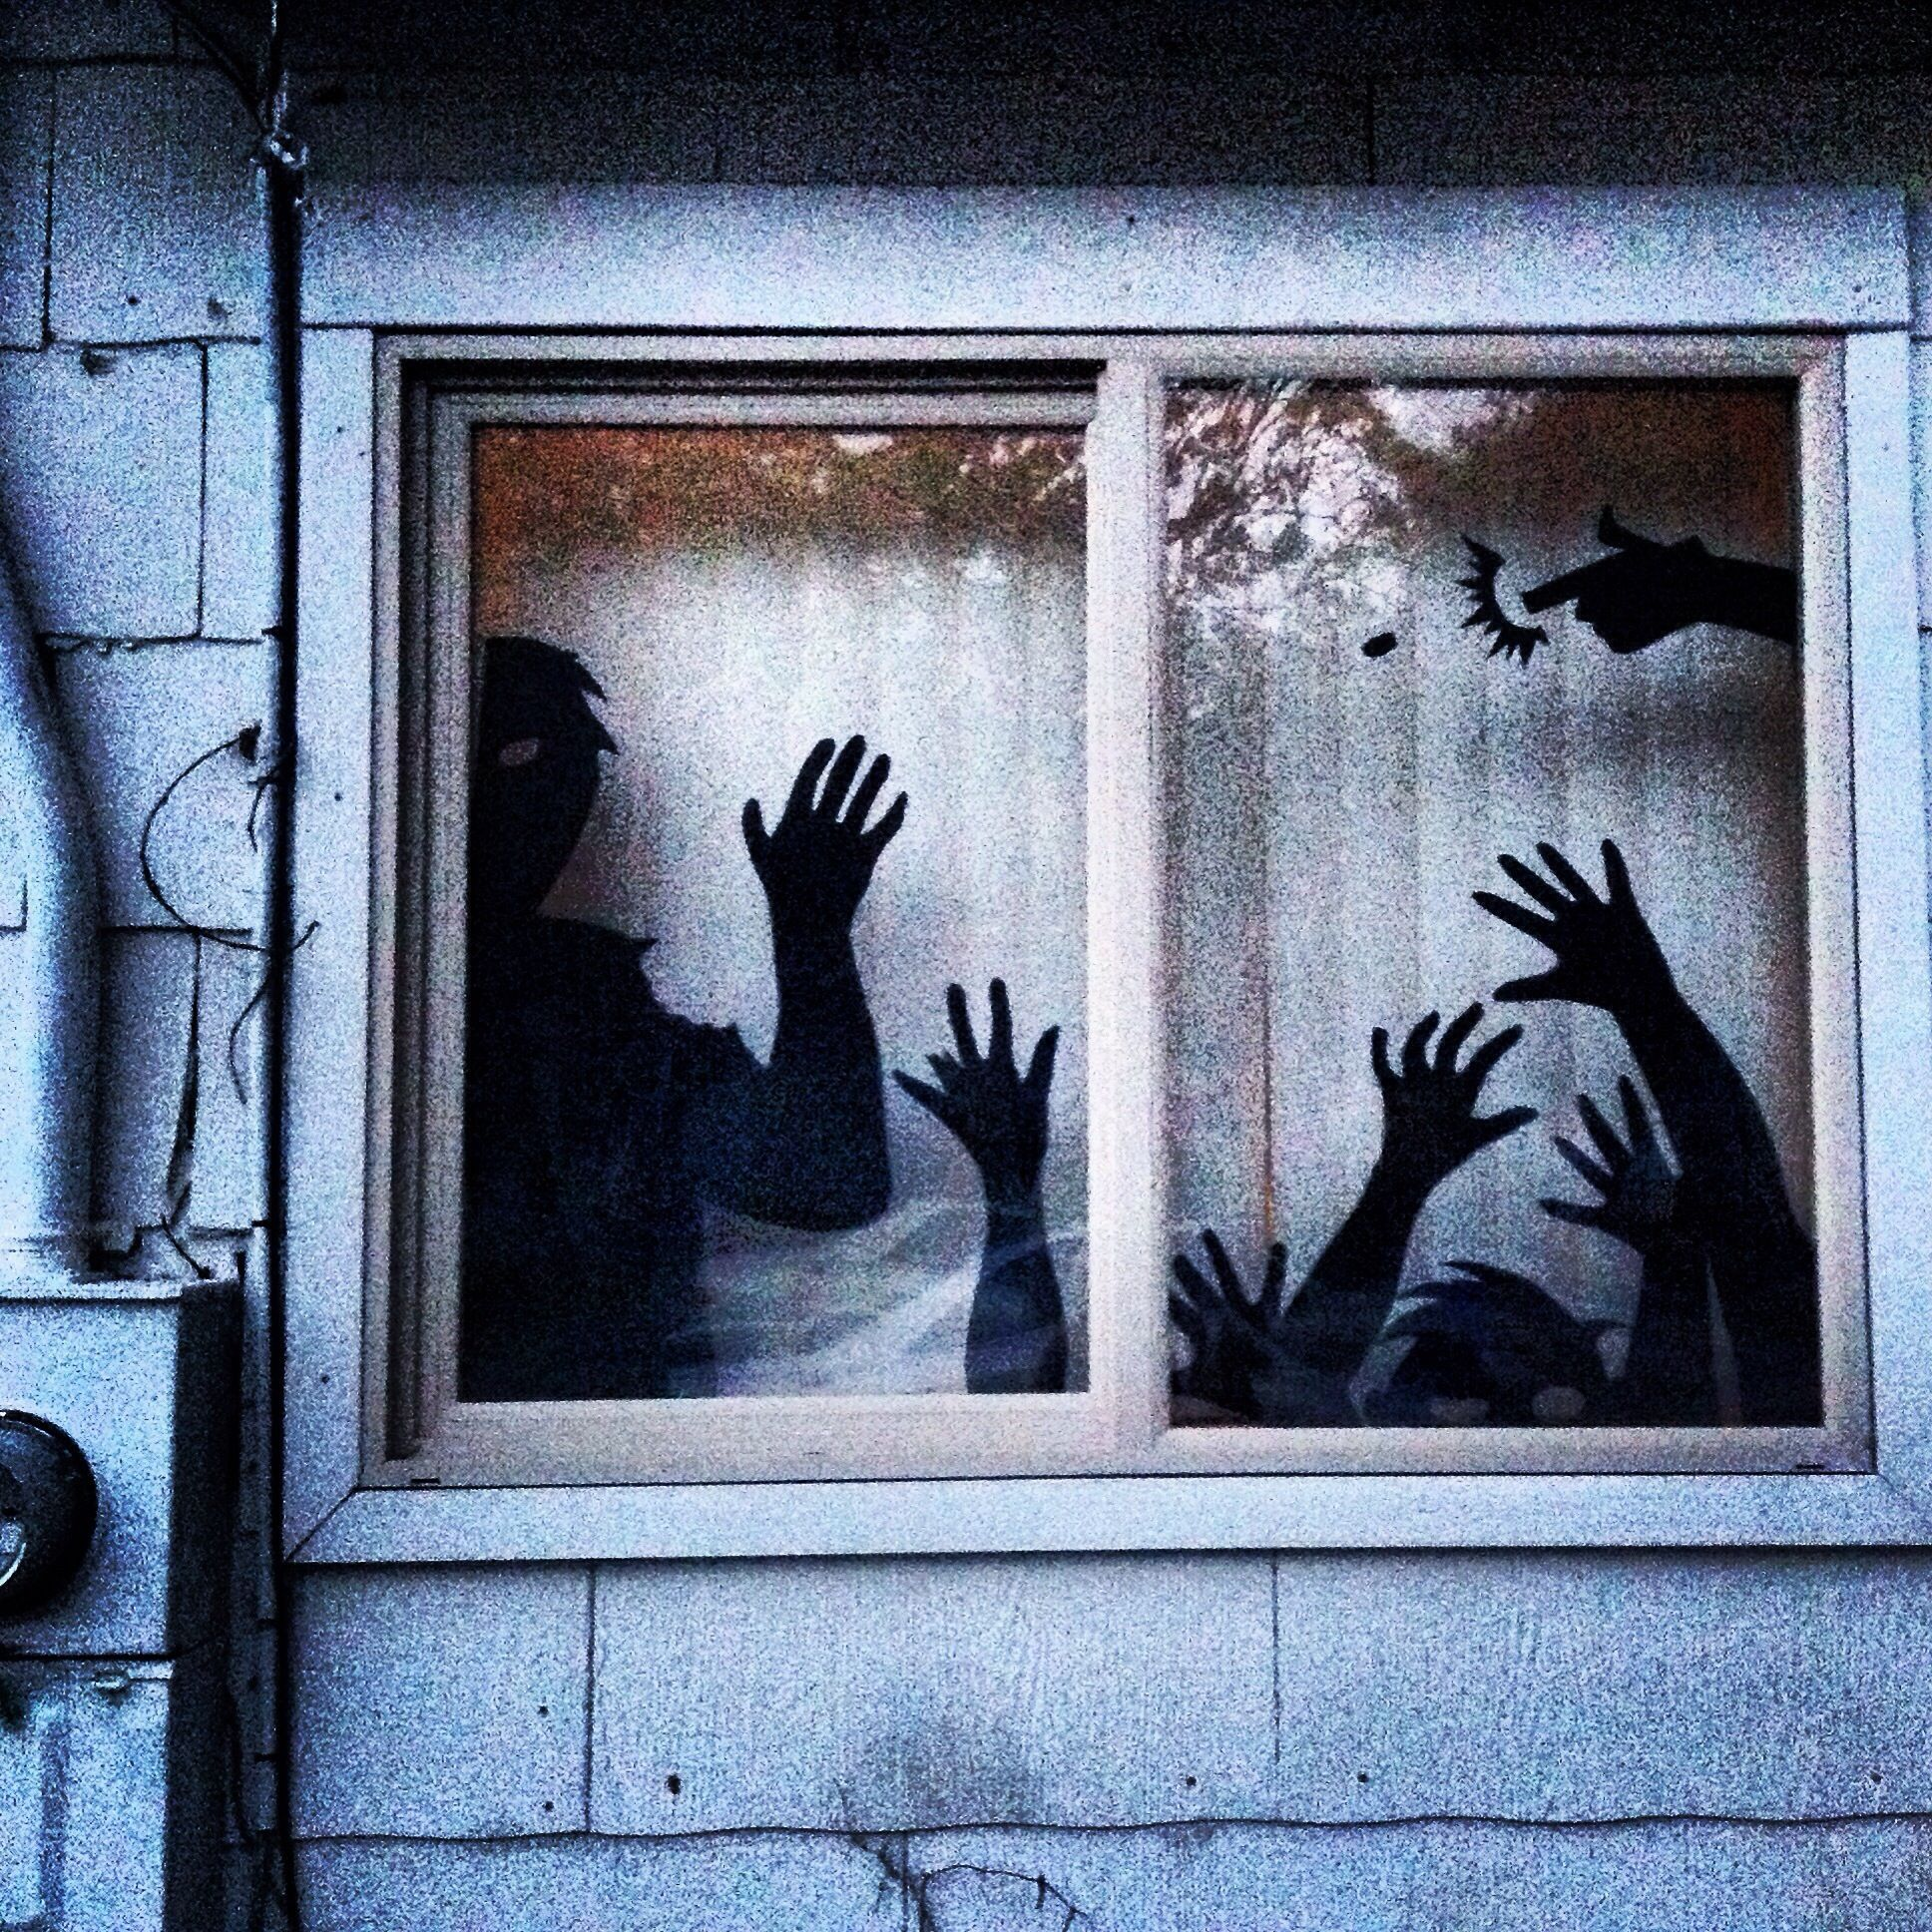 How To Make A Zombie Window For Halloween Recipe With Images Zombie Party Decorations Horror Party Zombie Decorations